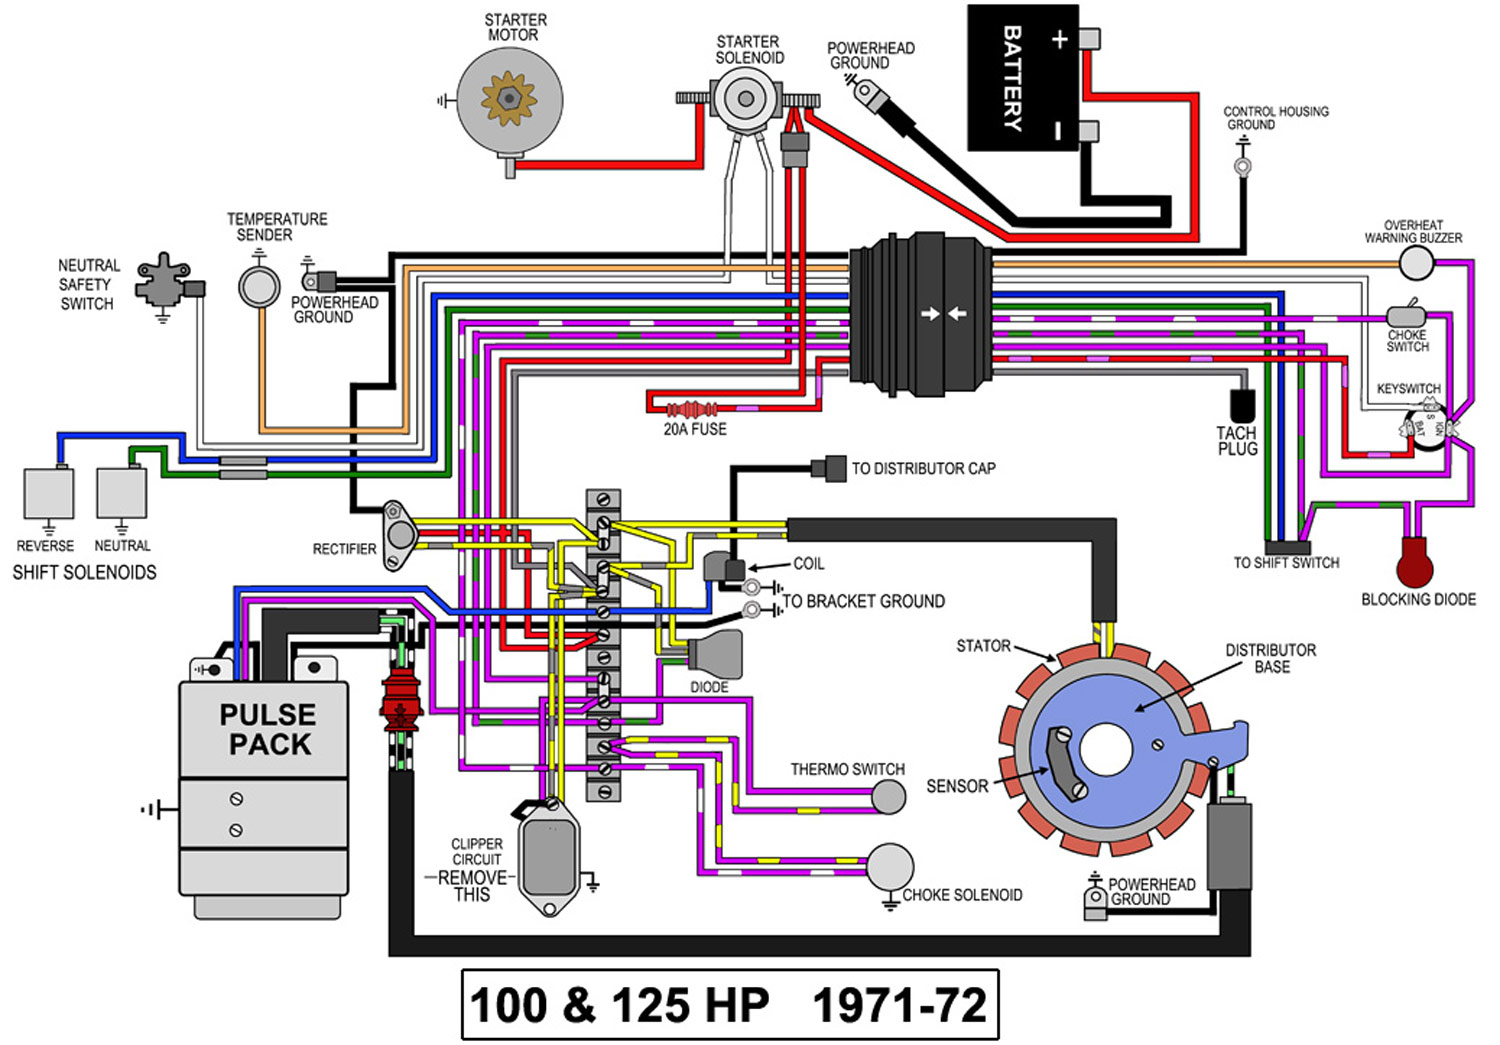 125 Hp Wiring Diagram - Wiring Diagrams Schema  Hp Force Outboard Wiring Diagram Mastertech Marine Chrysler on